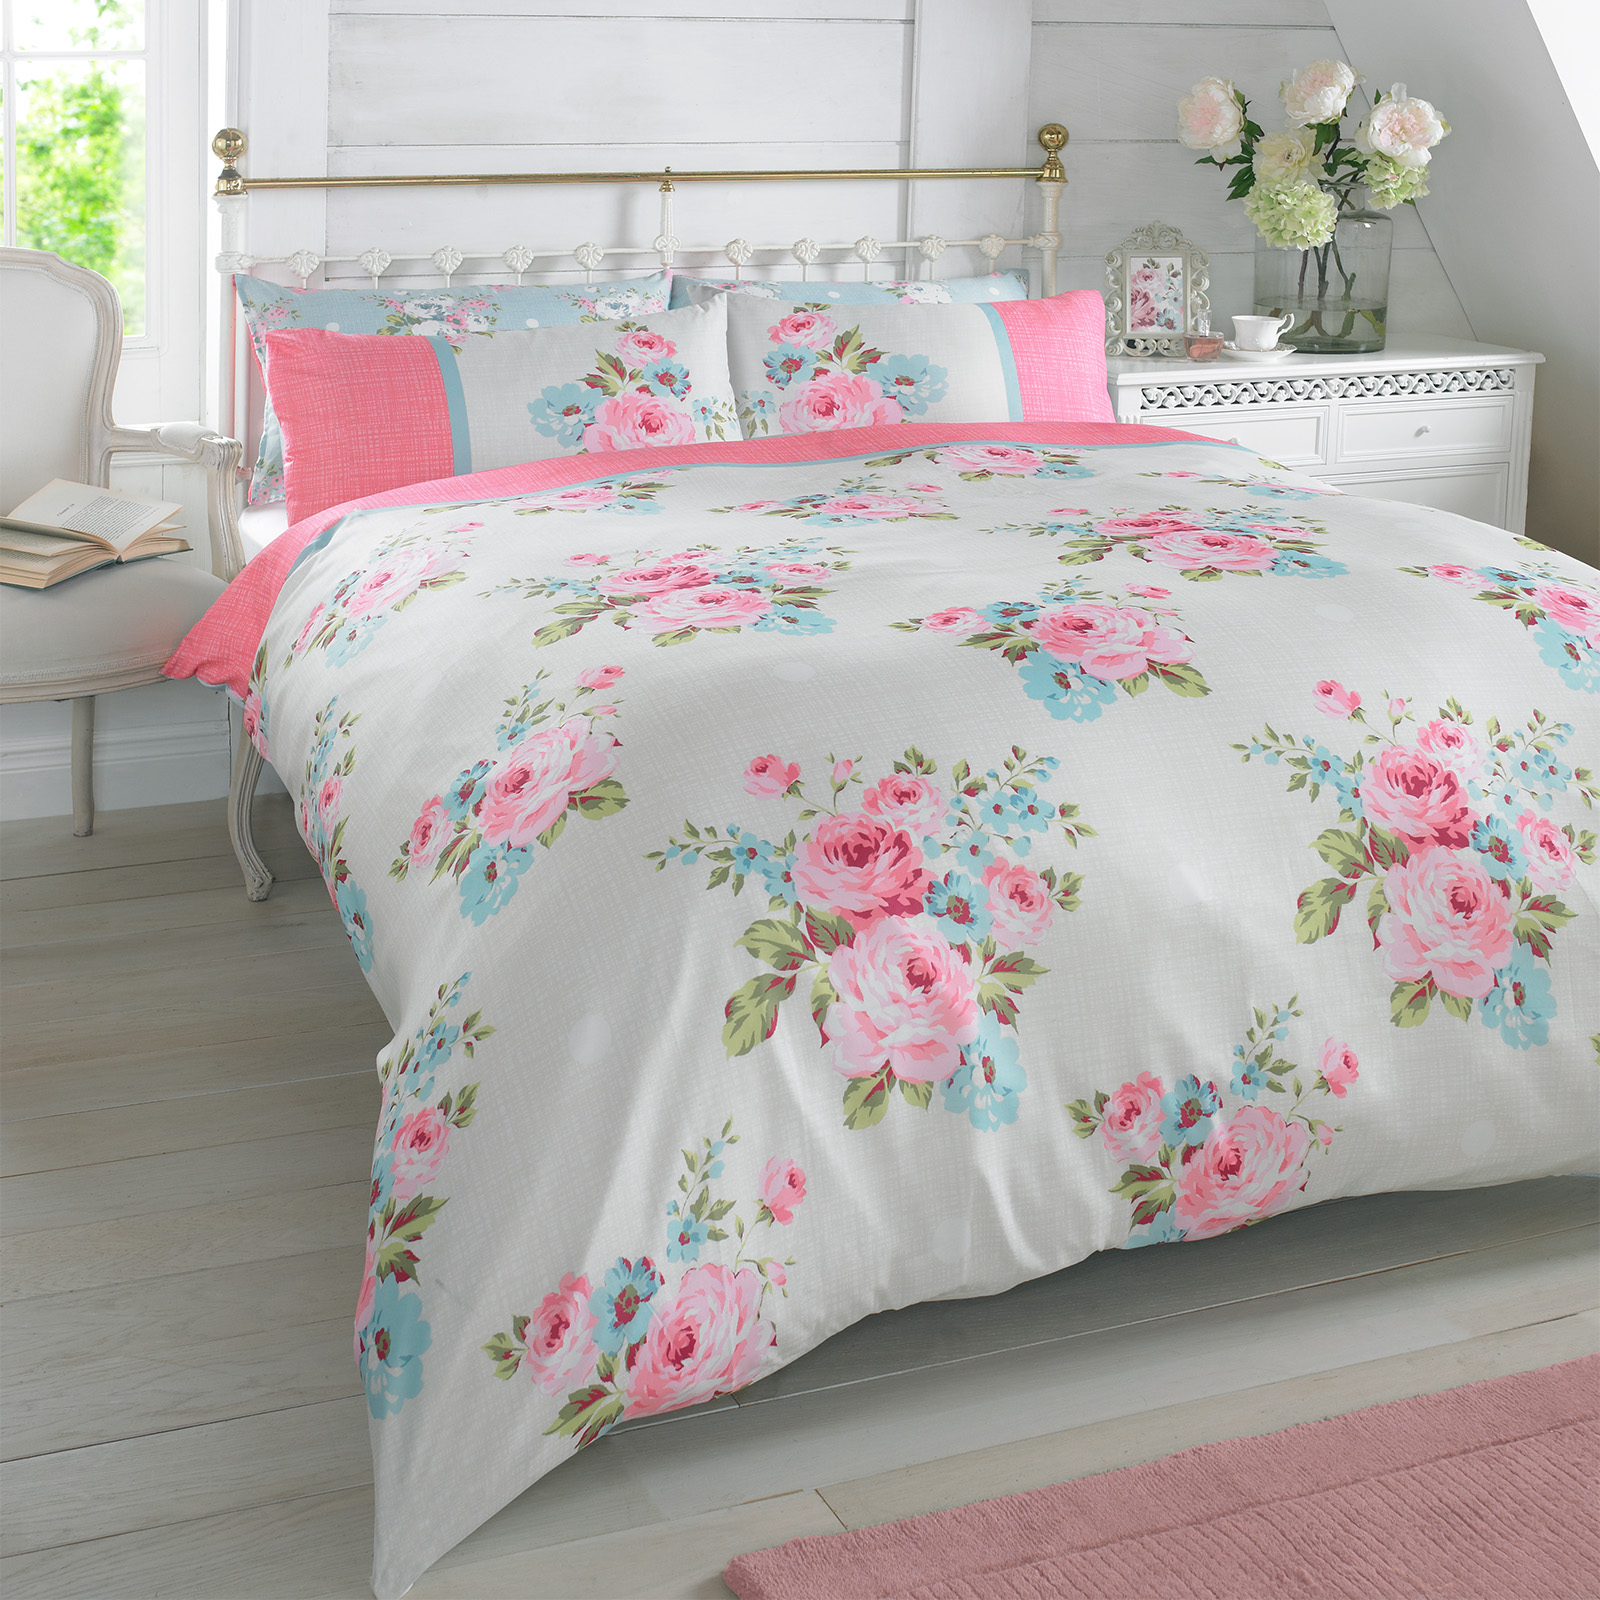 duvet quilt cover with pillowcase bedding set floral rosie pink  - duvet quilt cover with pillowcase bedding set floral rosie pink blue whiteroses